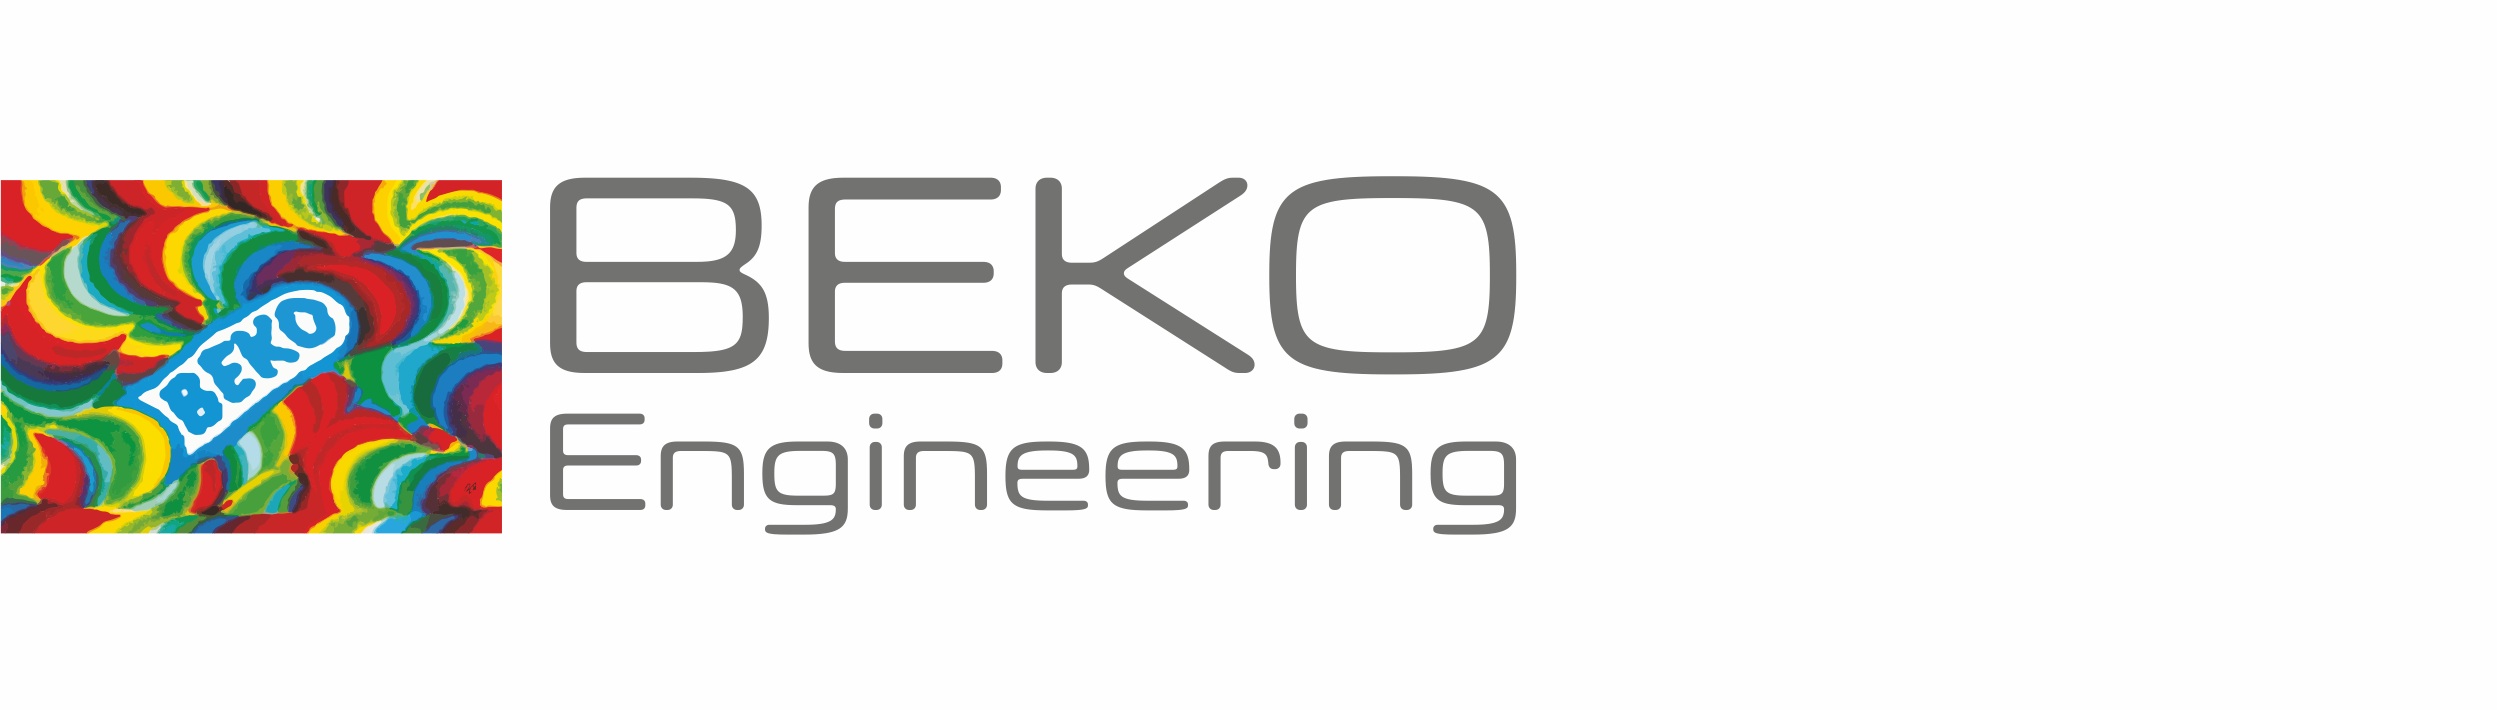 BEKO Engineering